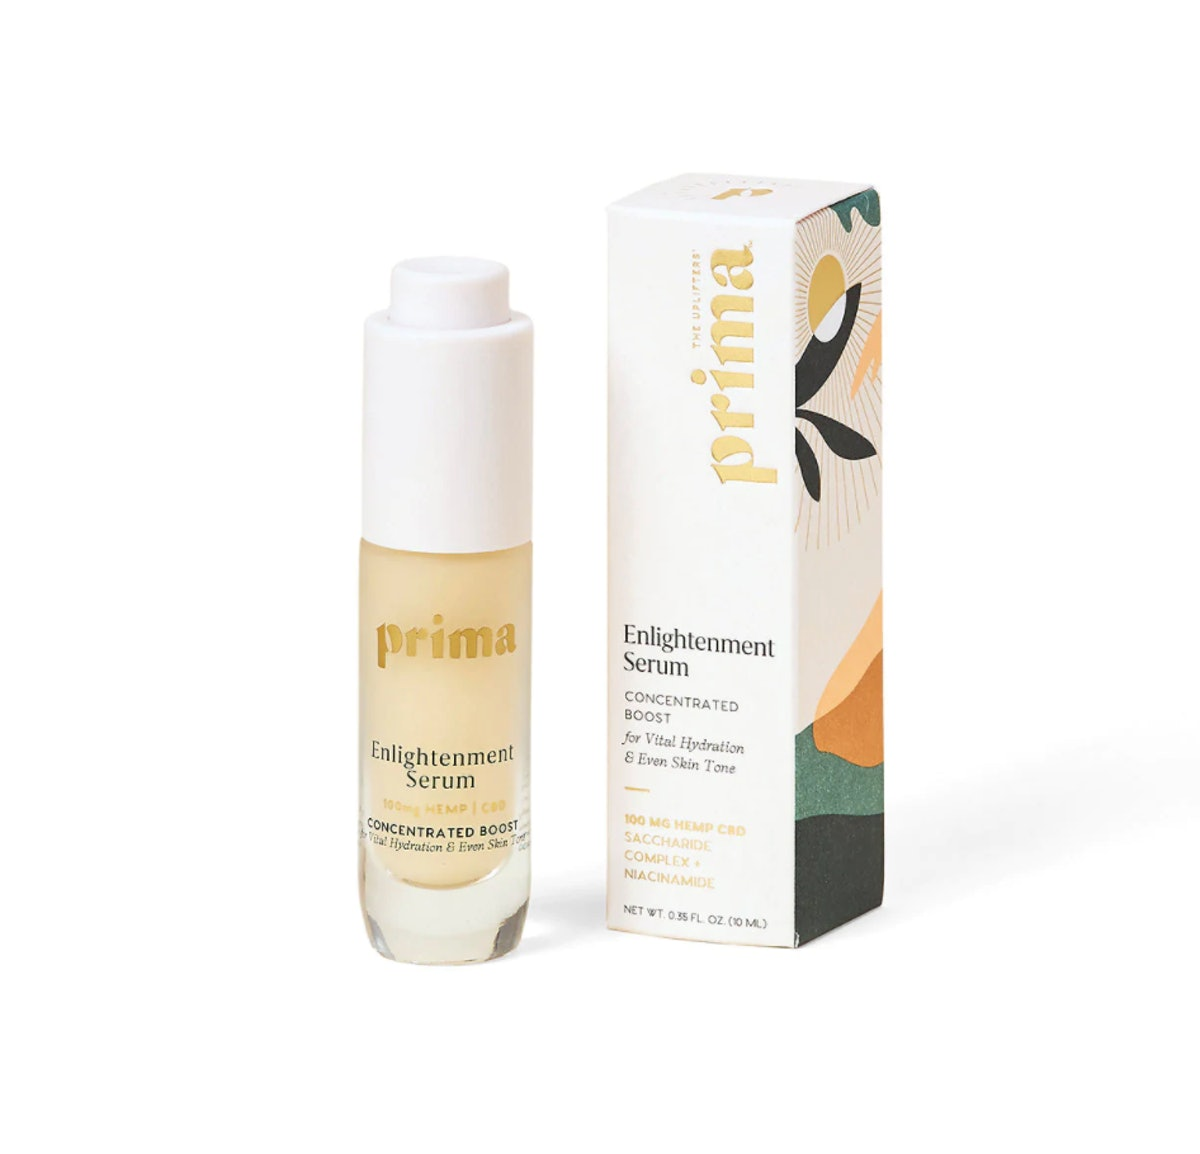 Enlightenment Serum Concentrated CBD Serum Booster for Vital Hydration & Even Skin Toner